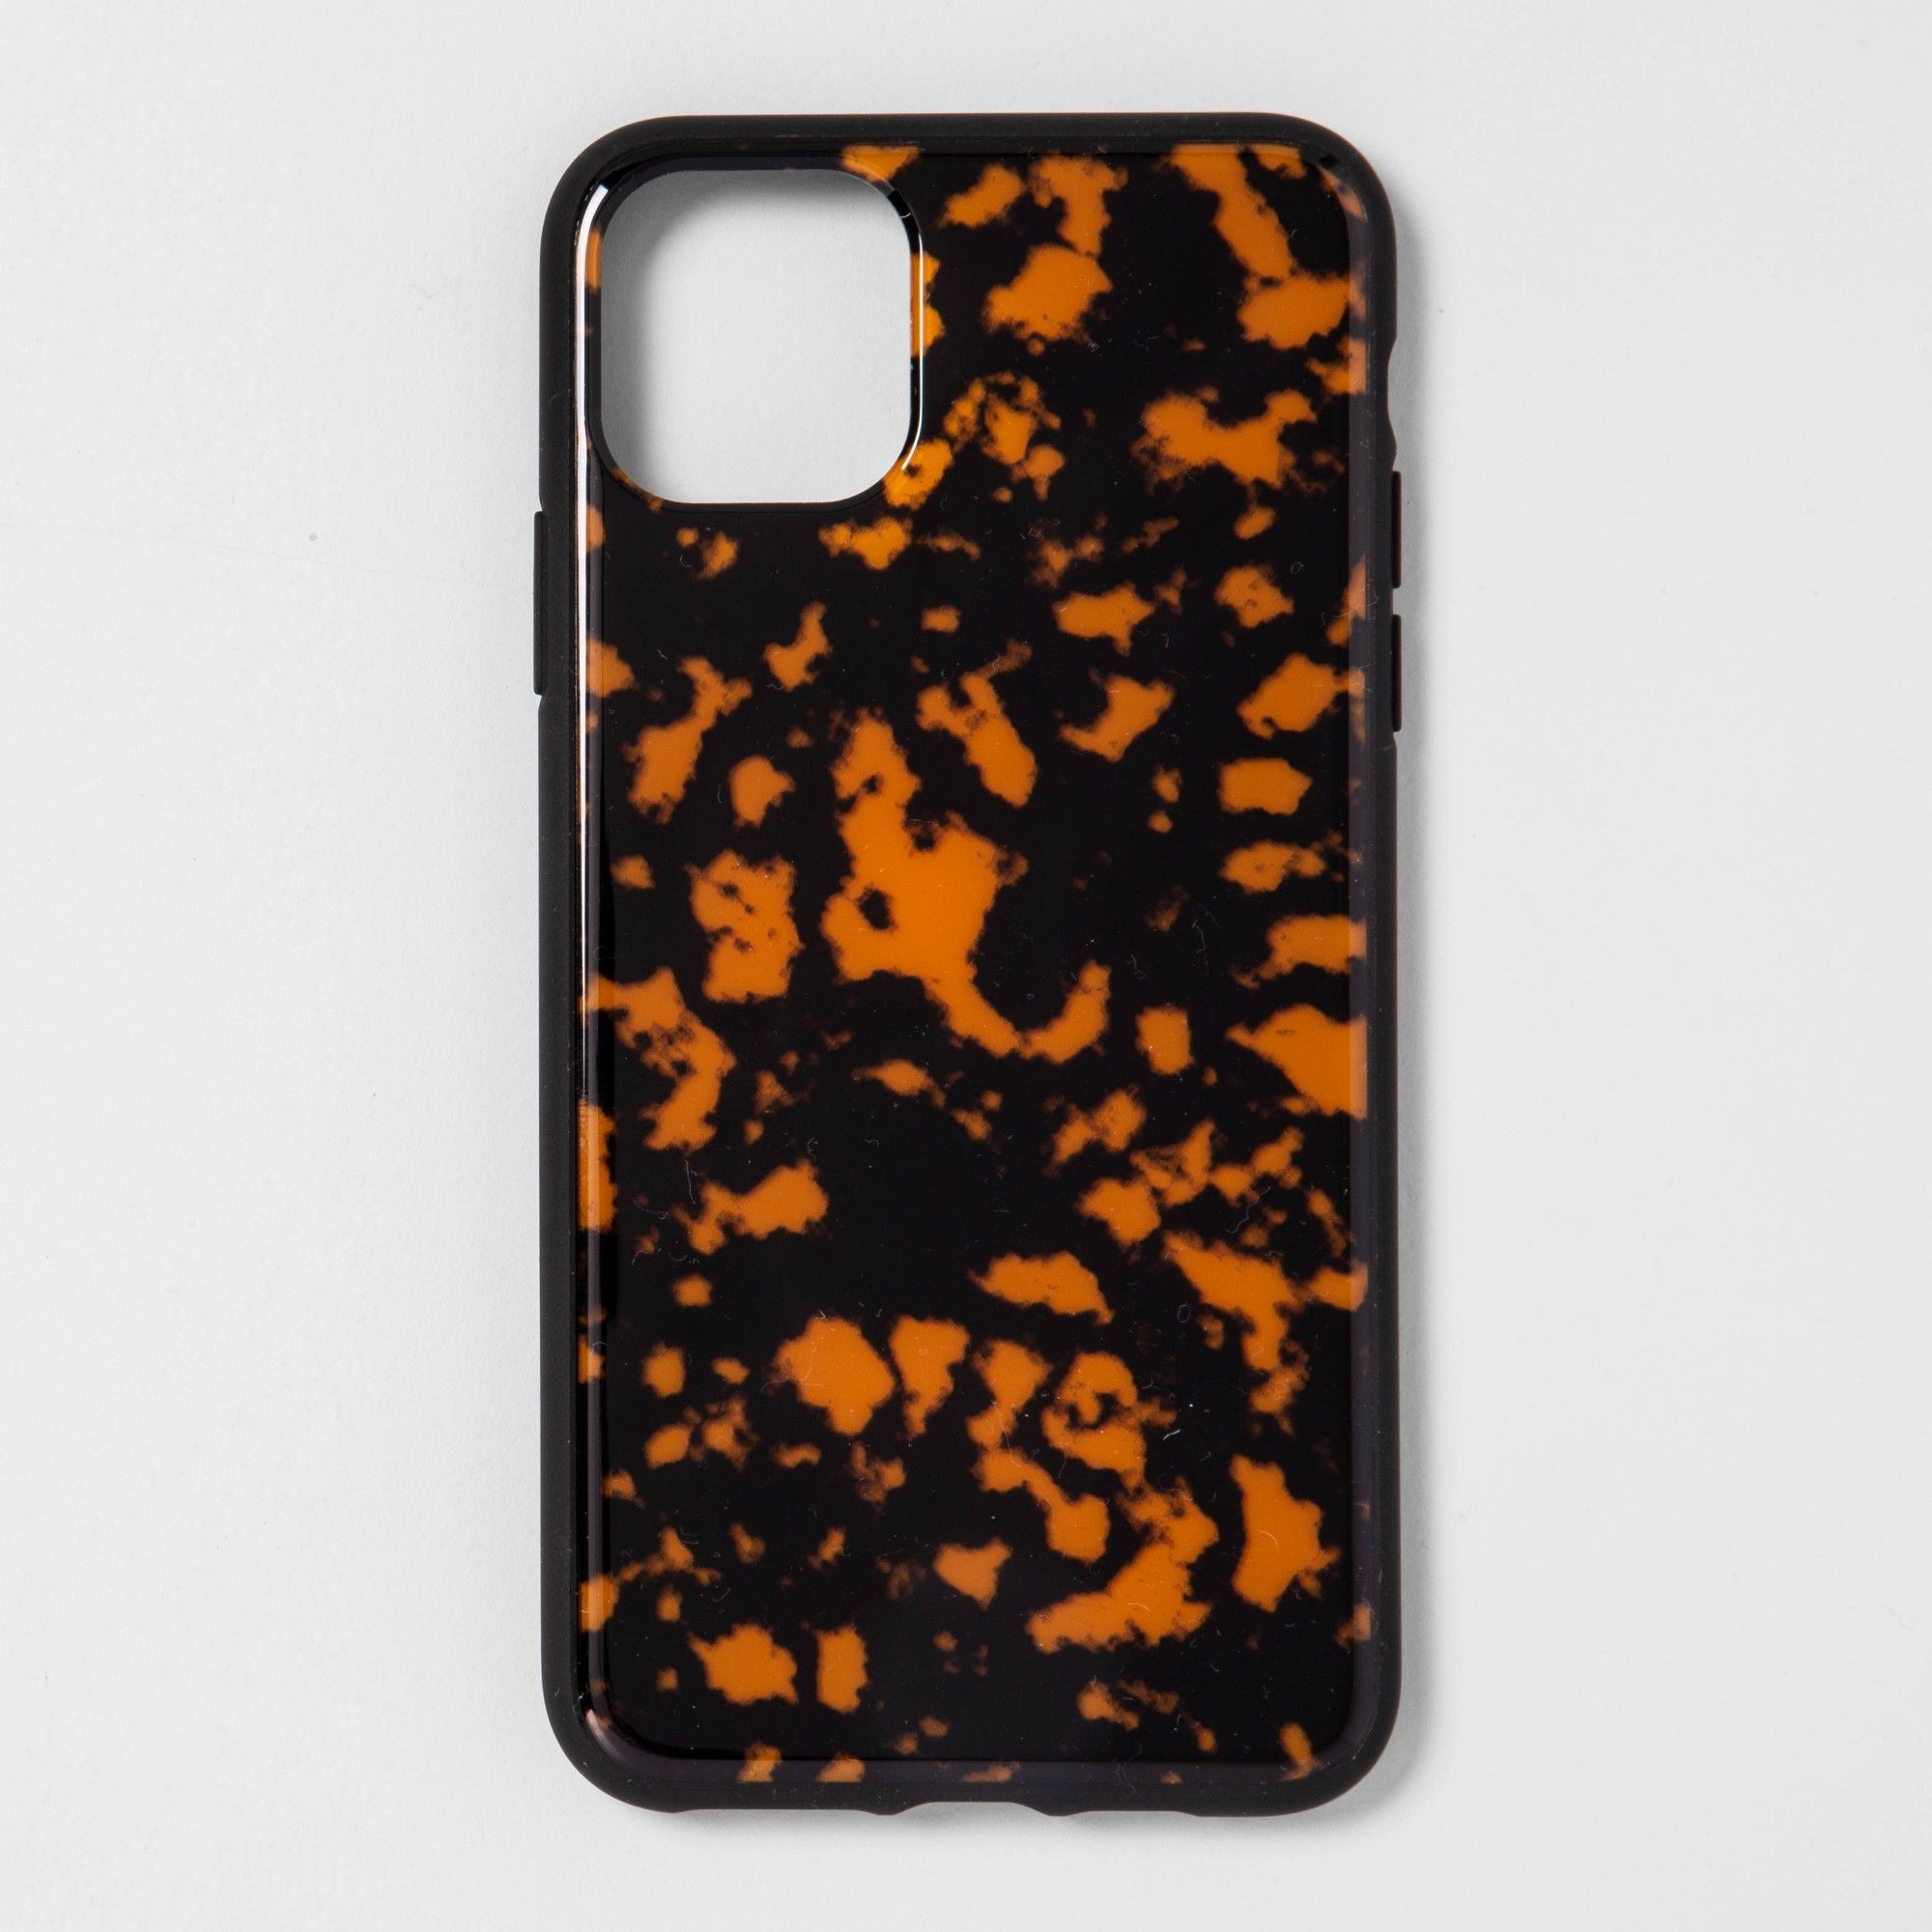 heyday™ Apple iPhone 11 Pro Max Case Tortoise Shell in